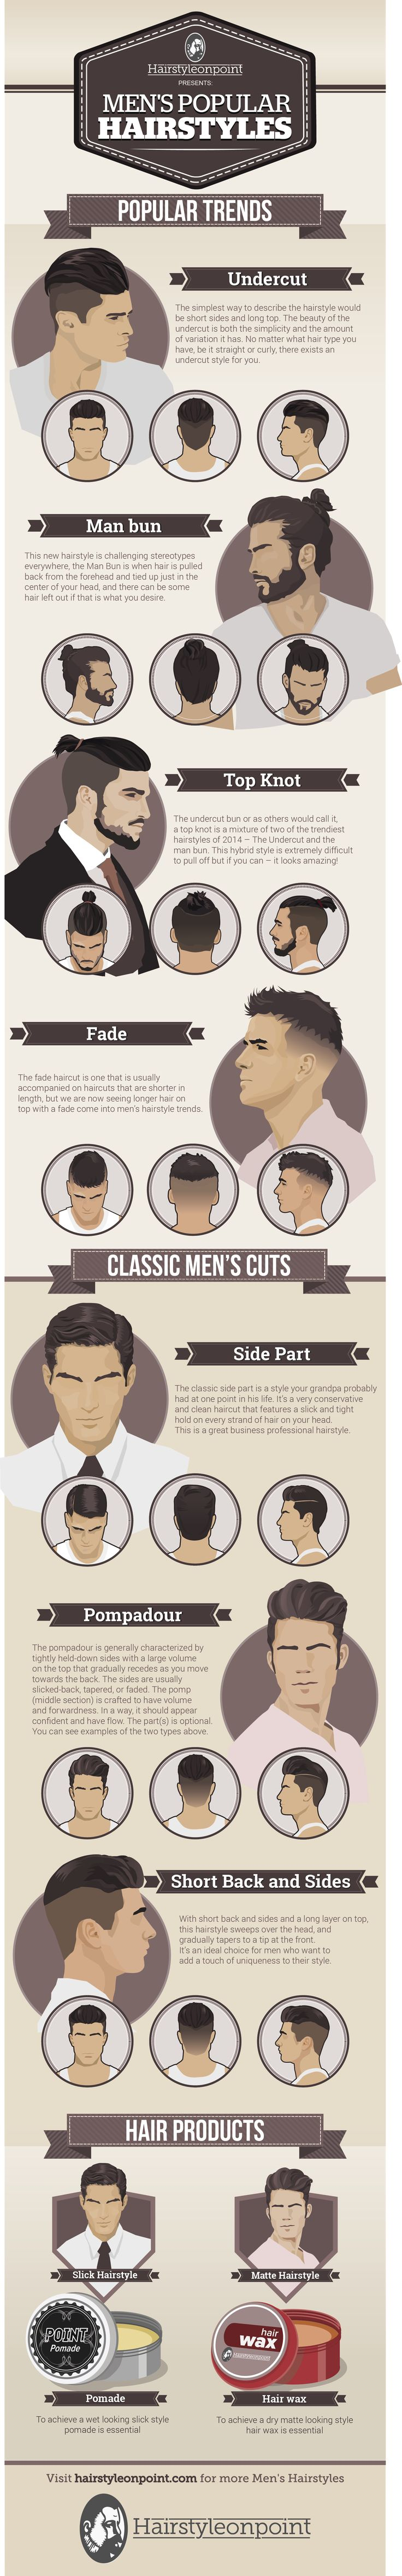 7 Trendiest Men's Hairstyles - saving this for my son. My infatuation is growing my hair long.